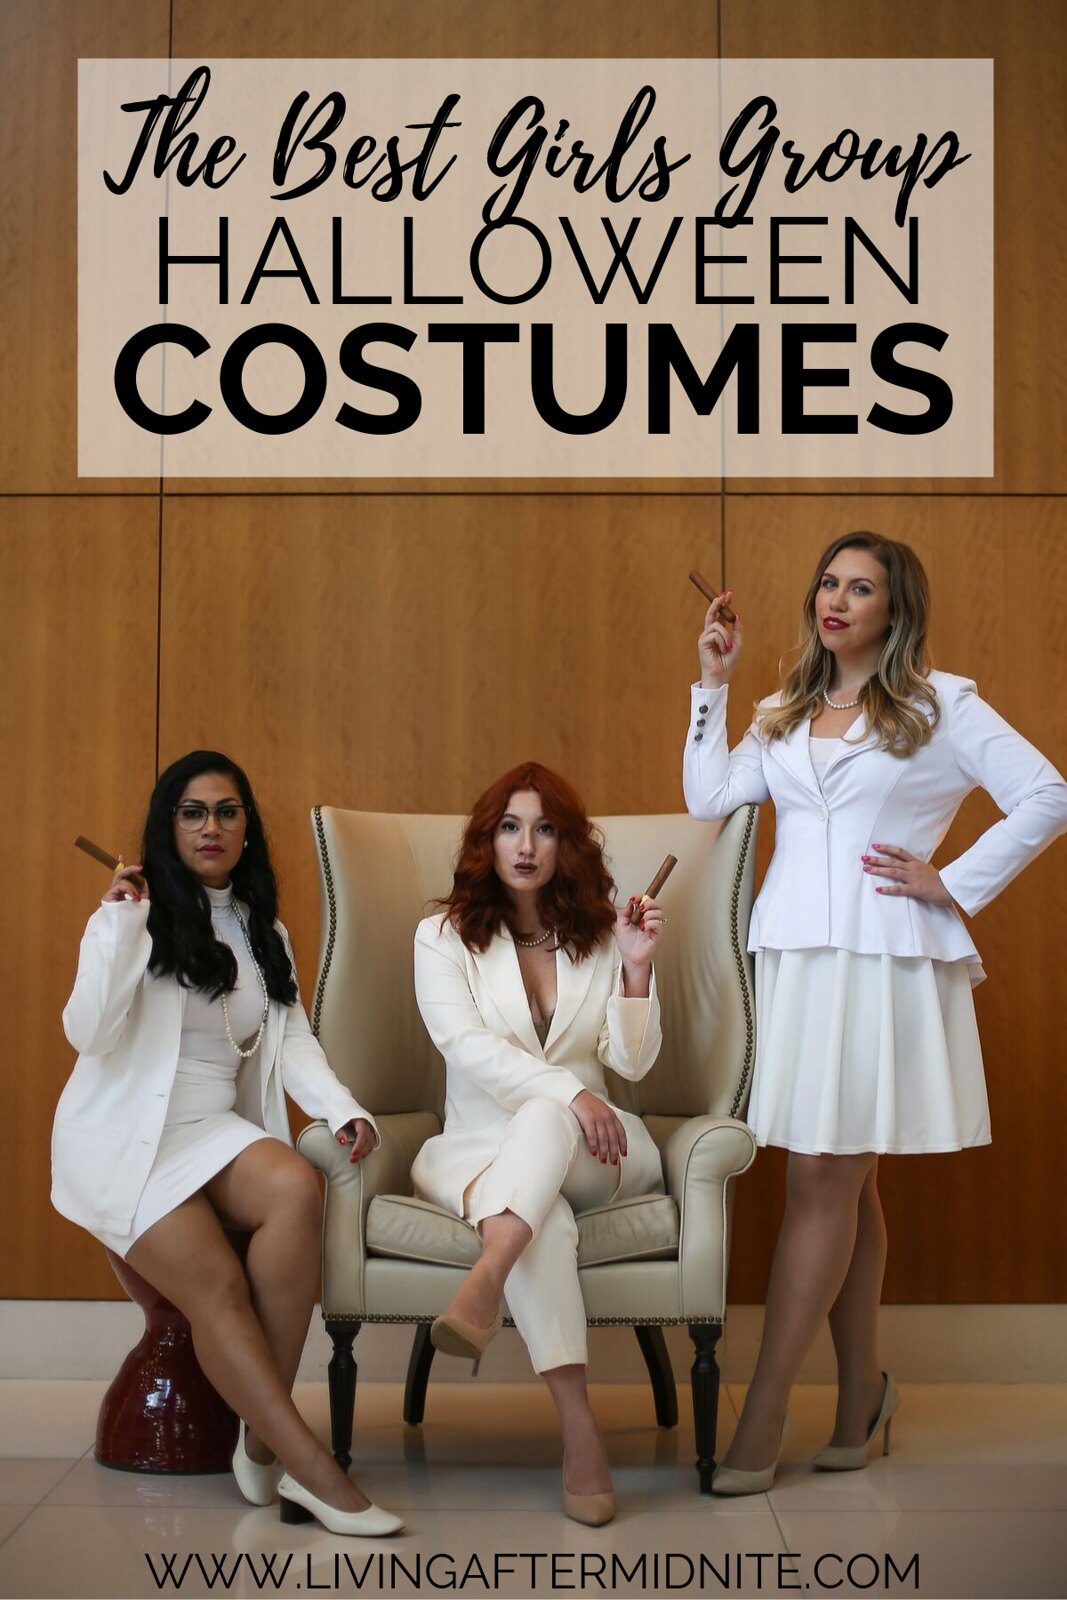 The First Wives Club Halloween Costume | The Best Girls Group Halloween Costume | Movie Themed Halloween Costumes | Best Friends Halloween Costume